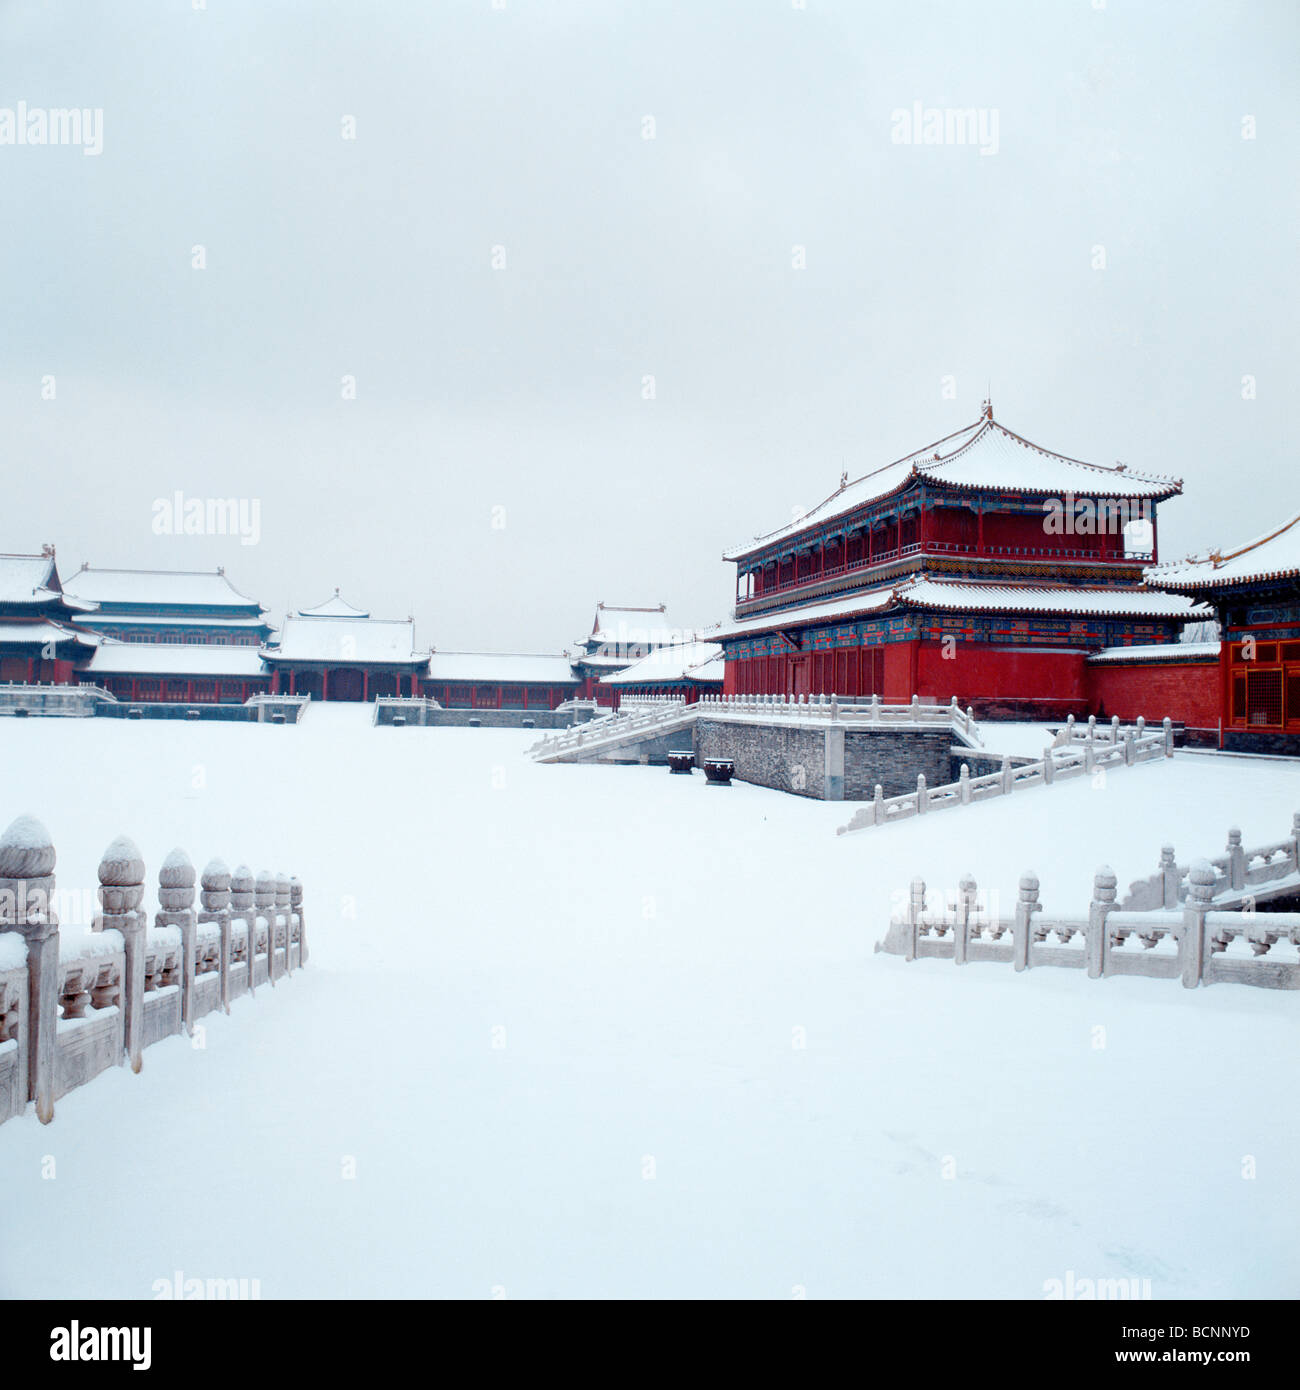 Pavilion of Manifesting Righteousness in winter, Forbidden City, Beijing, China - Stock Image